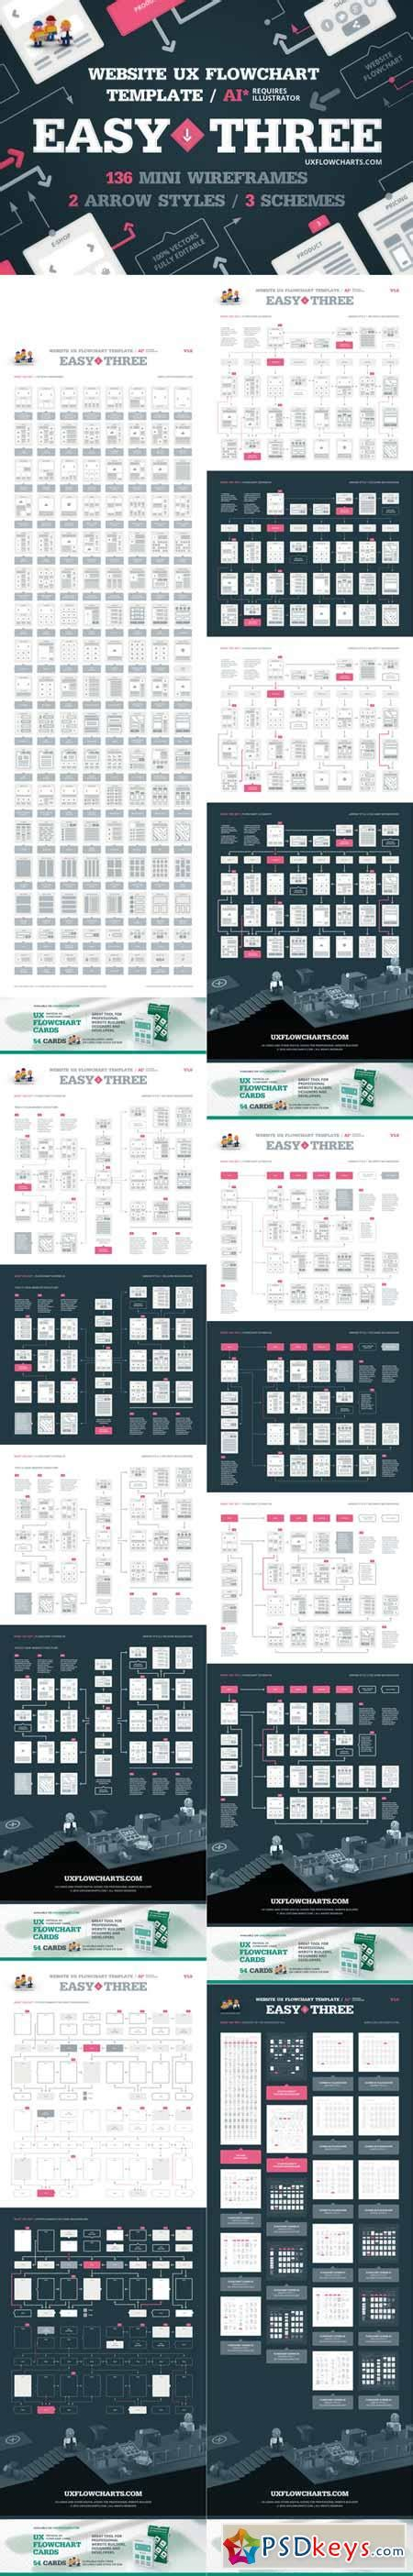 Easythree Website Ux Flowchart Ai 512366 187 Free Download Photoshop Vector Stock Image Via Ux Flowchart Template